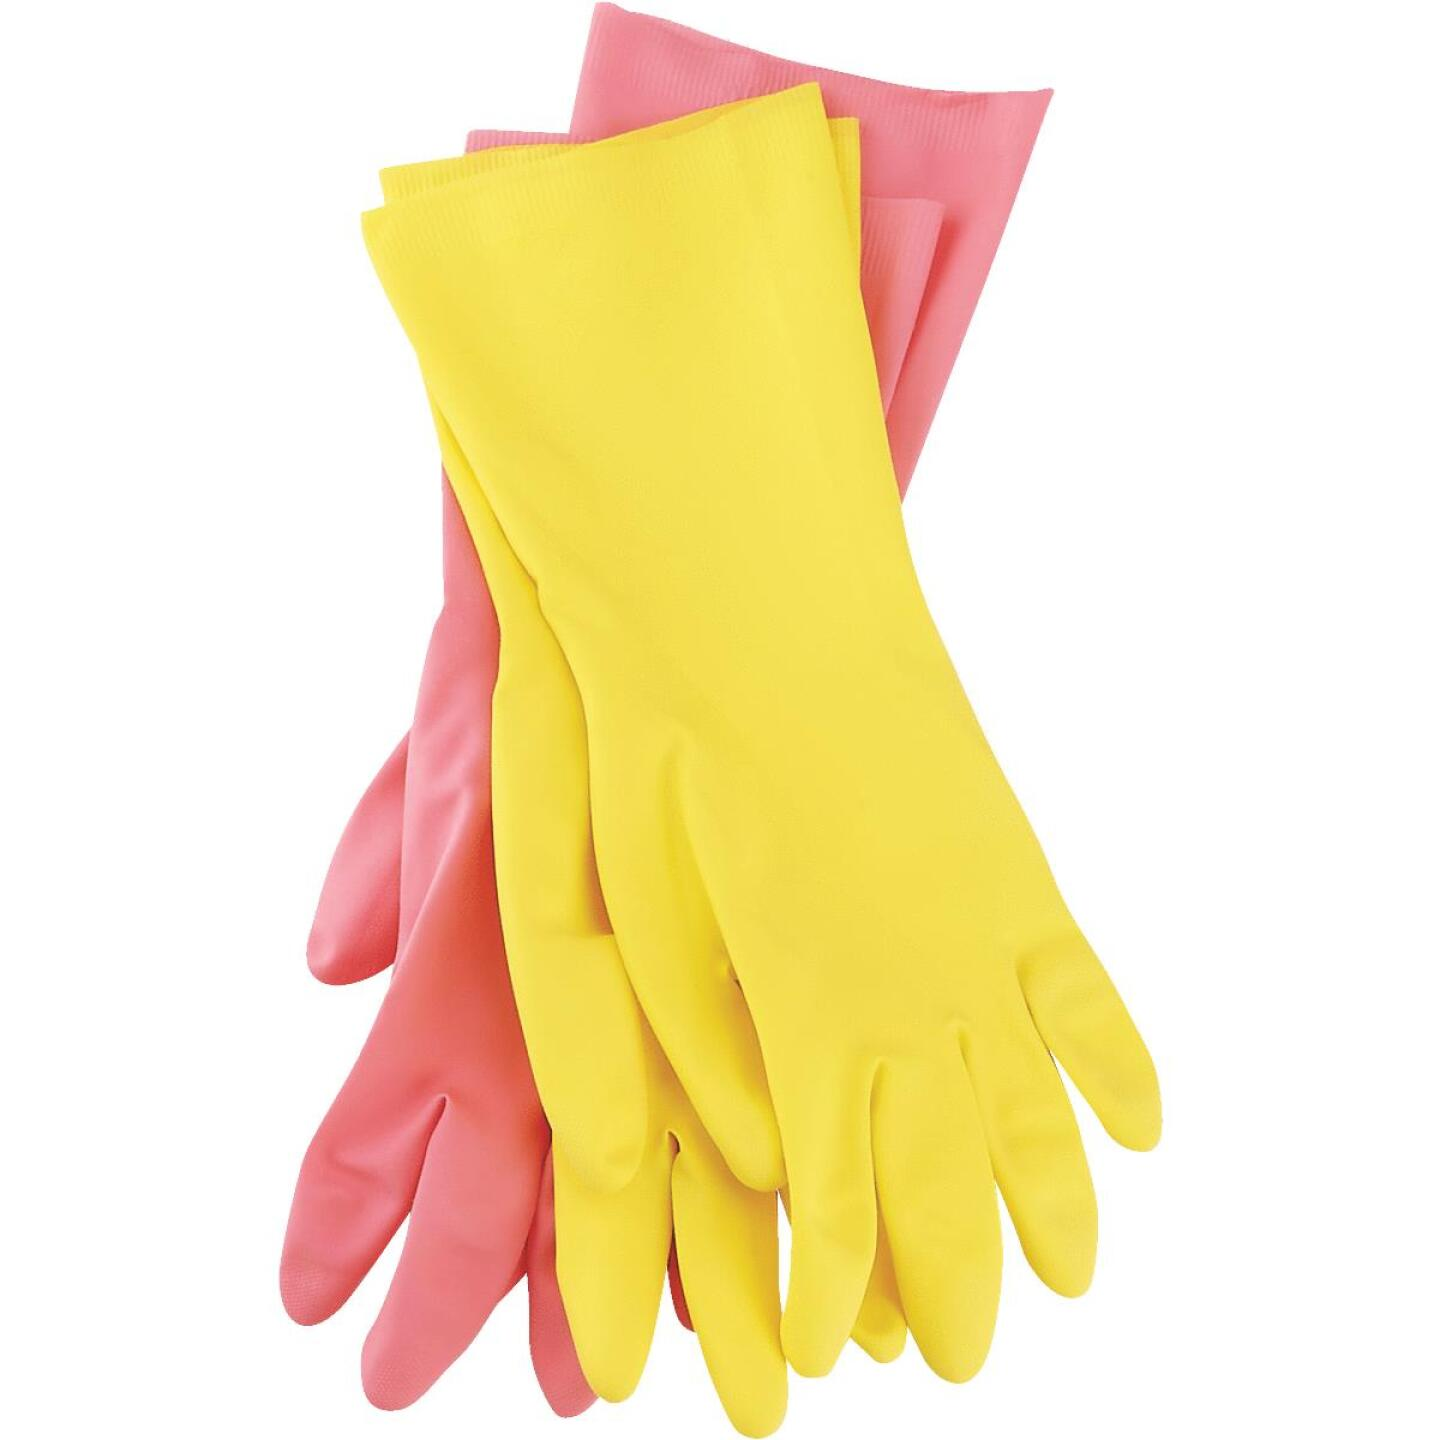 Soft Scrub Medium Latex Rubber Glove (2-Pack) Image 2